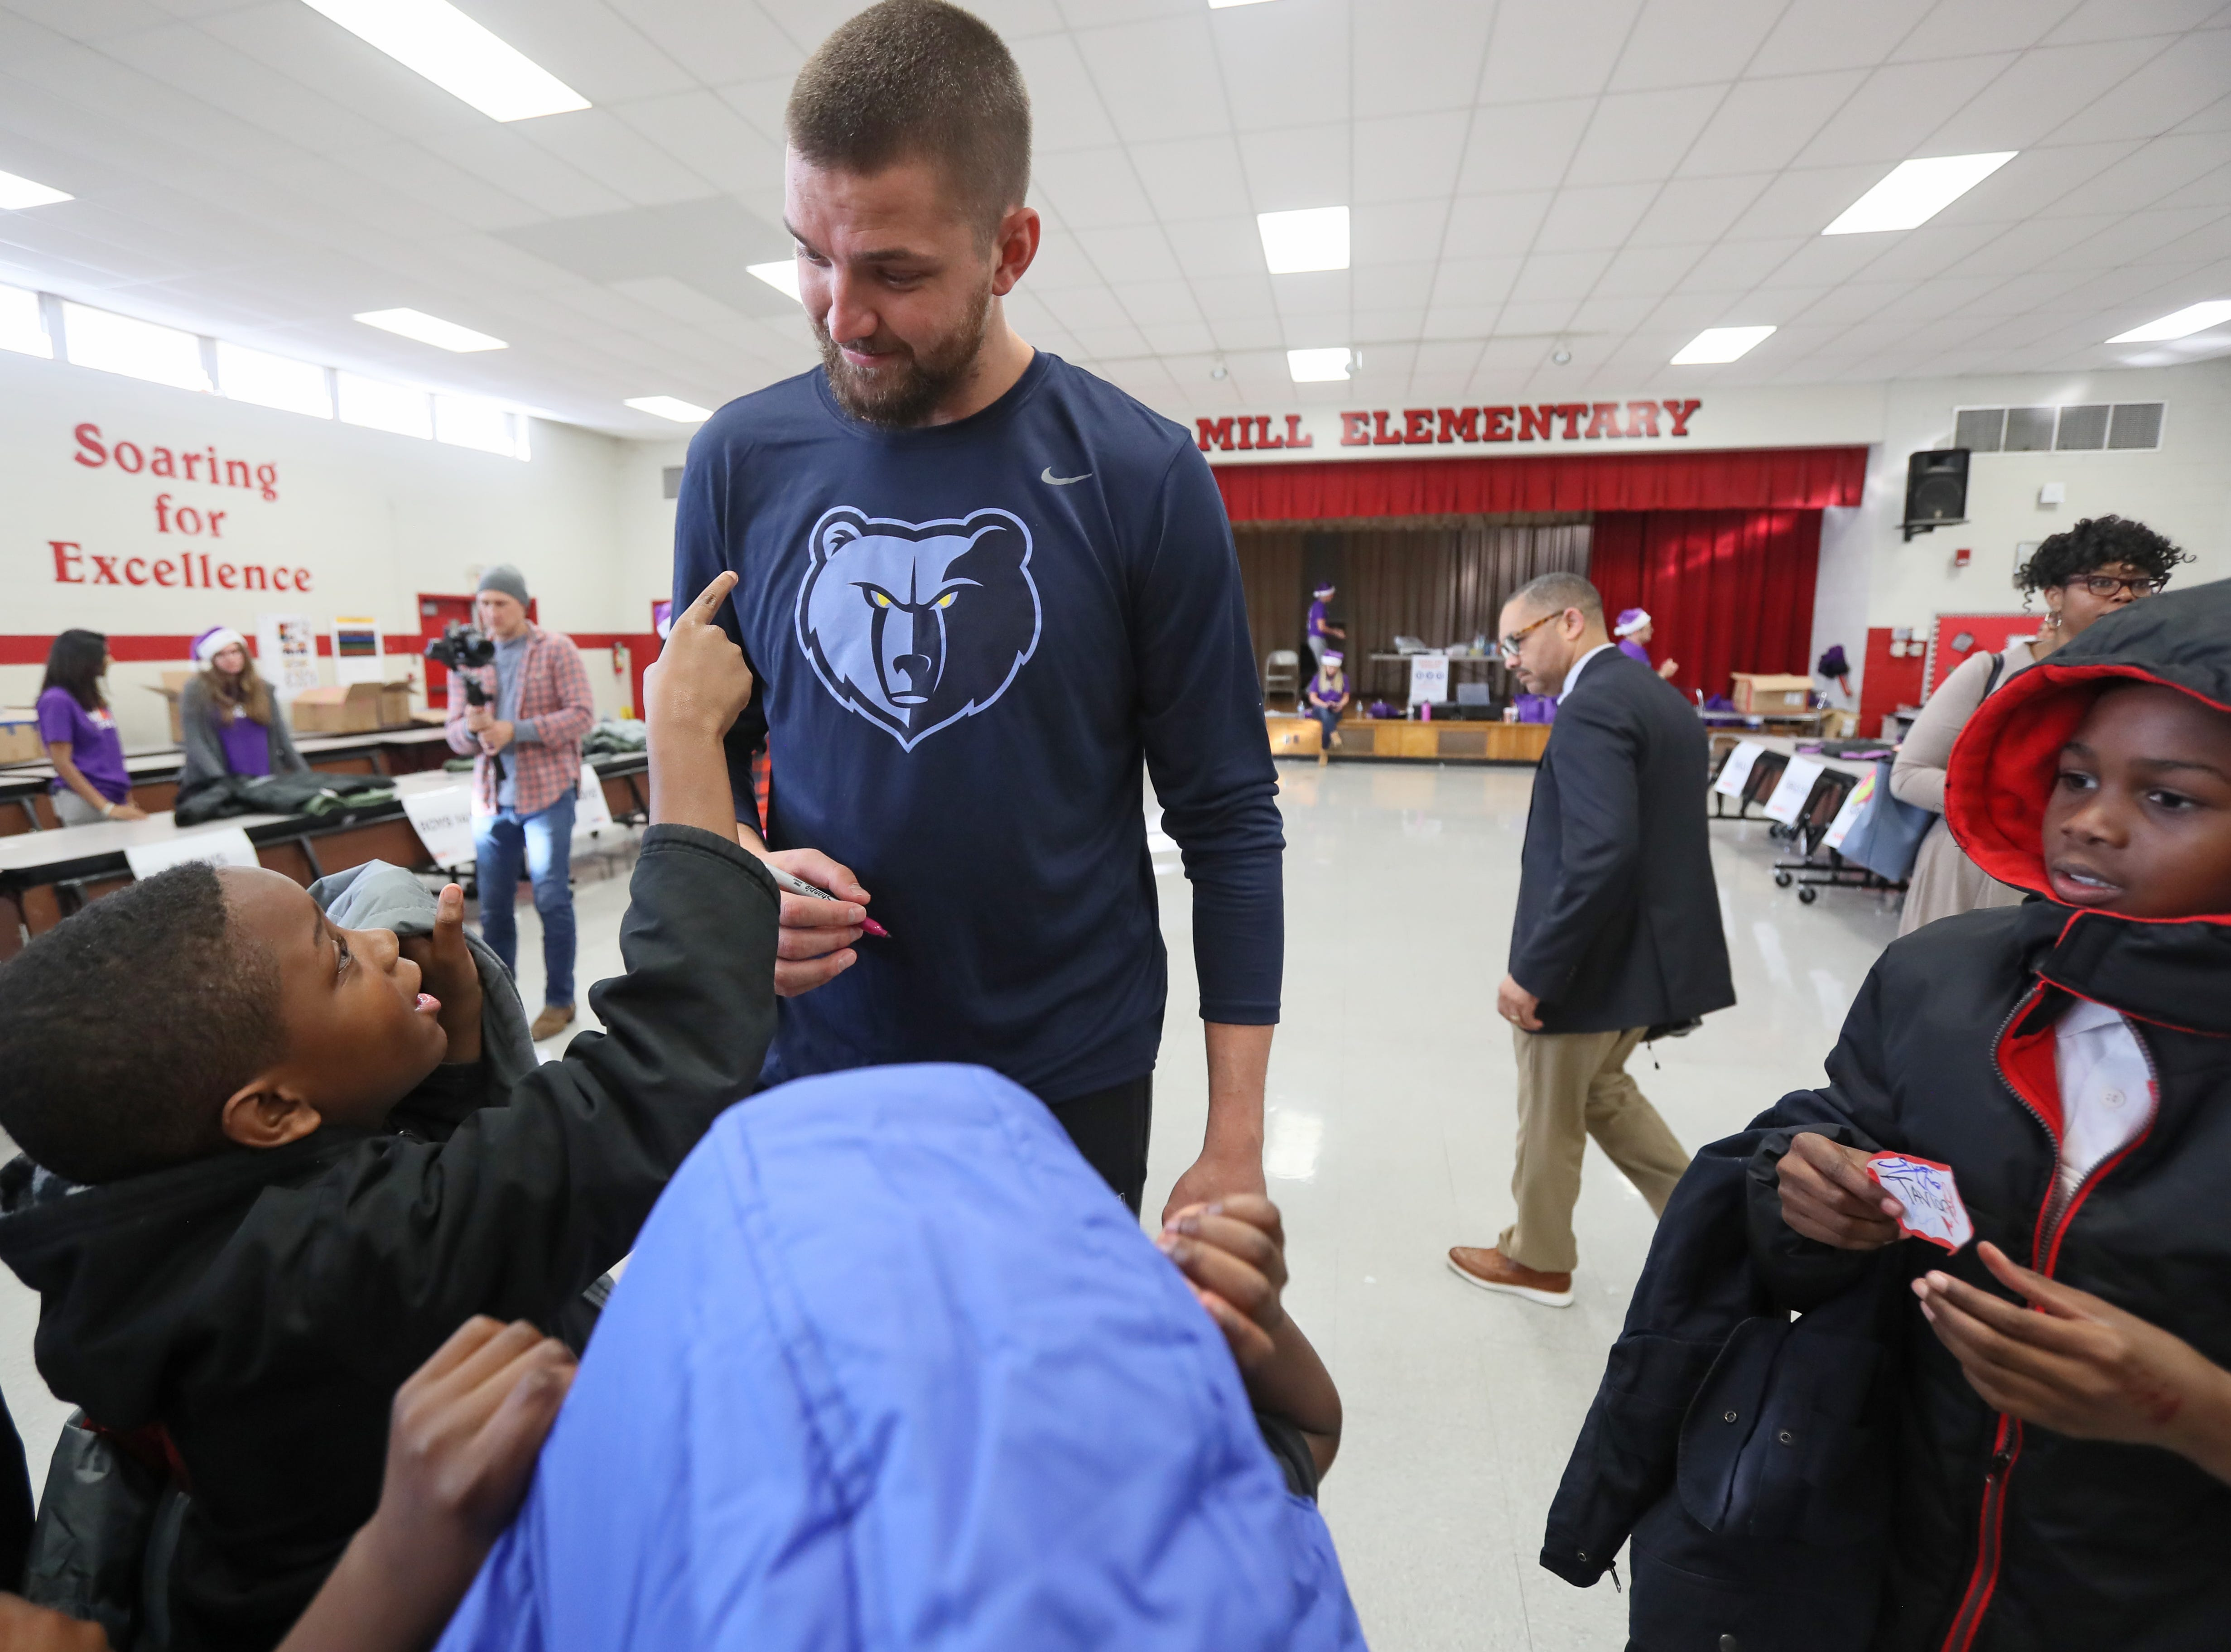 Memphis Grizzlies forward Chandler Parsons signs autographs as his team joins FedEx and Operation Warm to help surprise children with new coats at Hawkins Mill Elementary School on Thursday, Nov. 8, 2018.